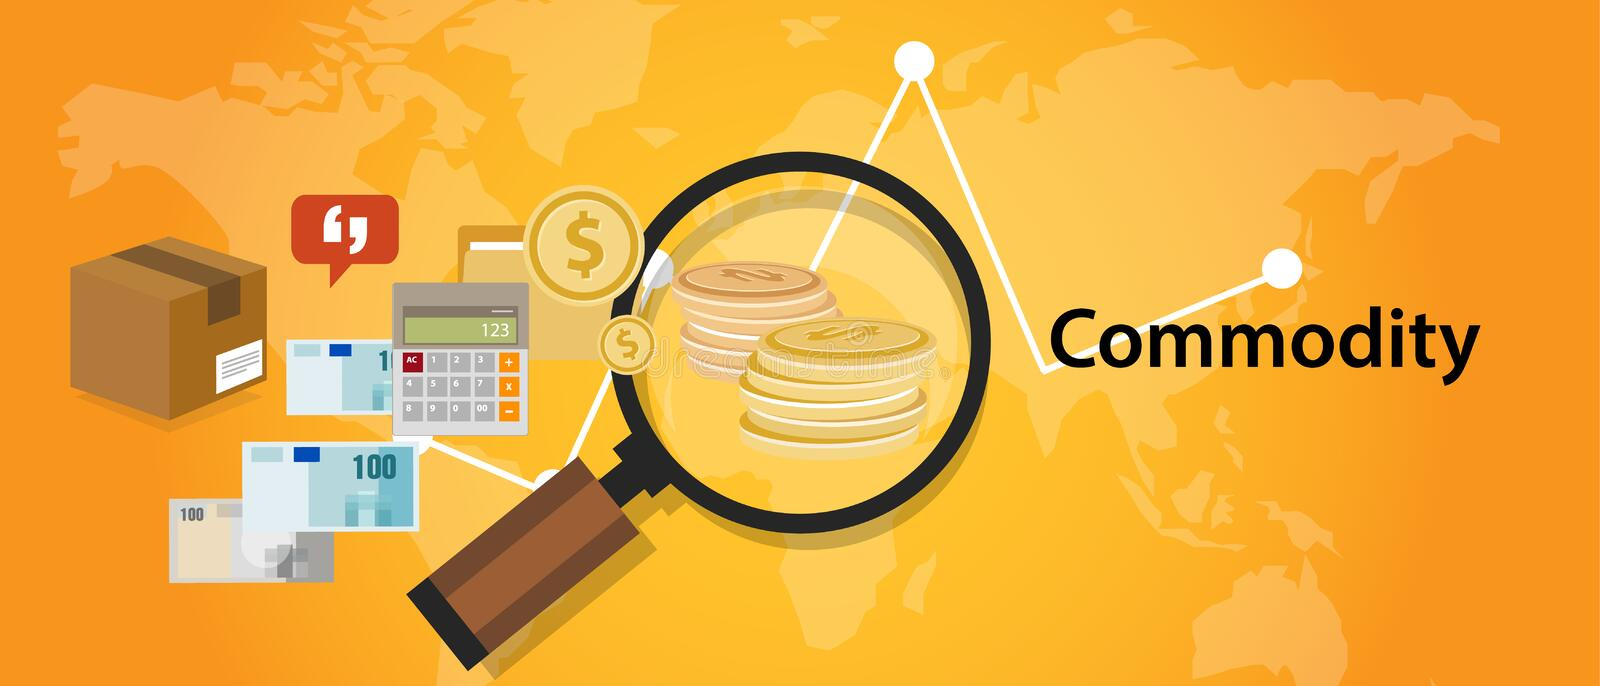 Commodity trading market investment concept in economy royalty free illustration